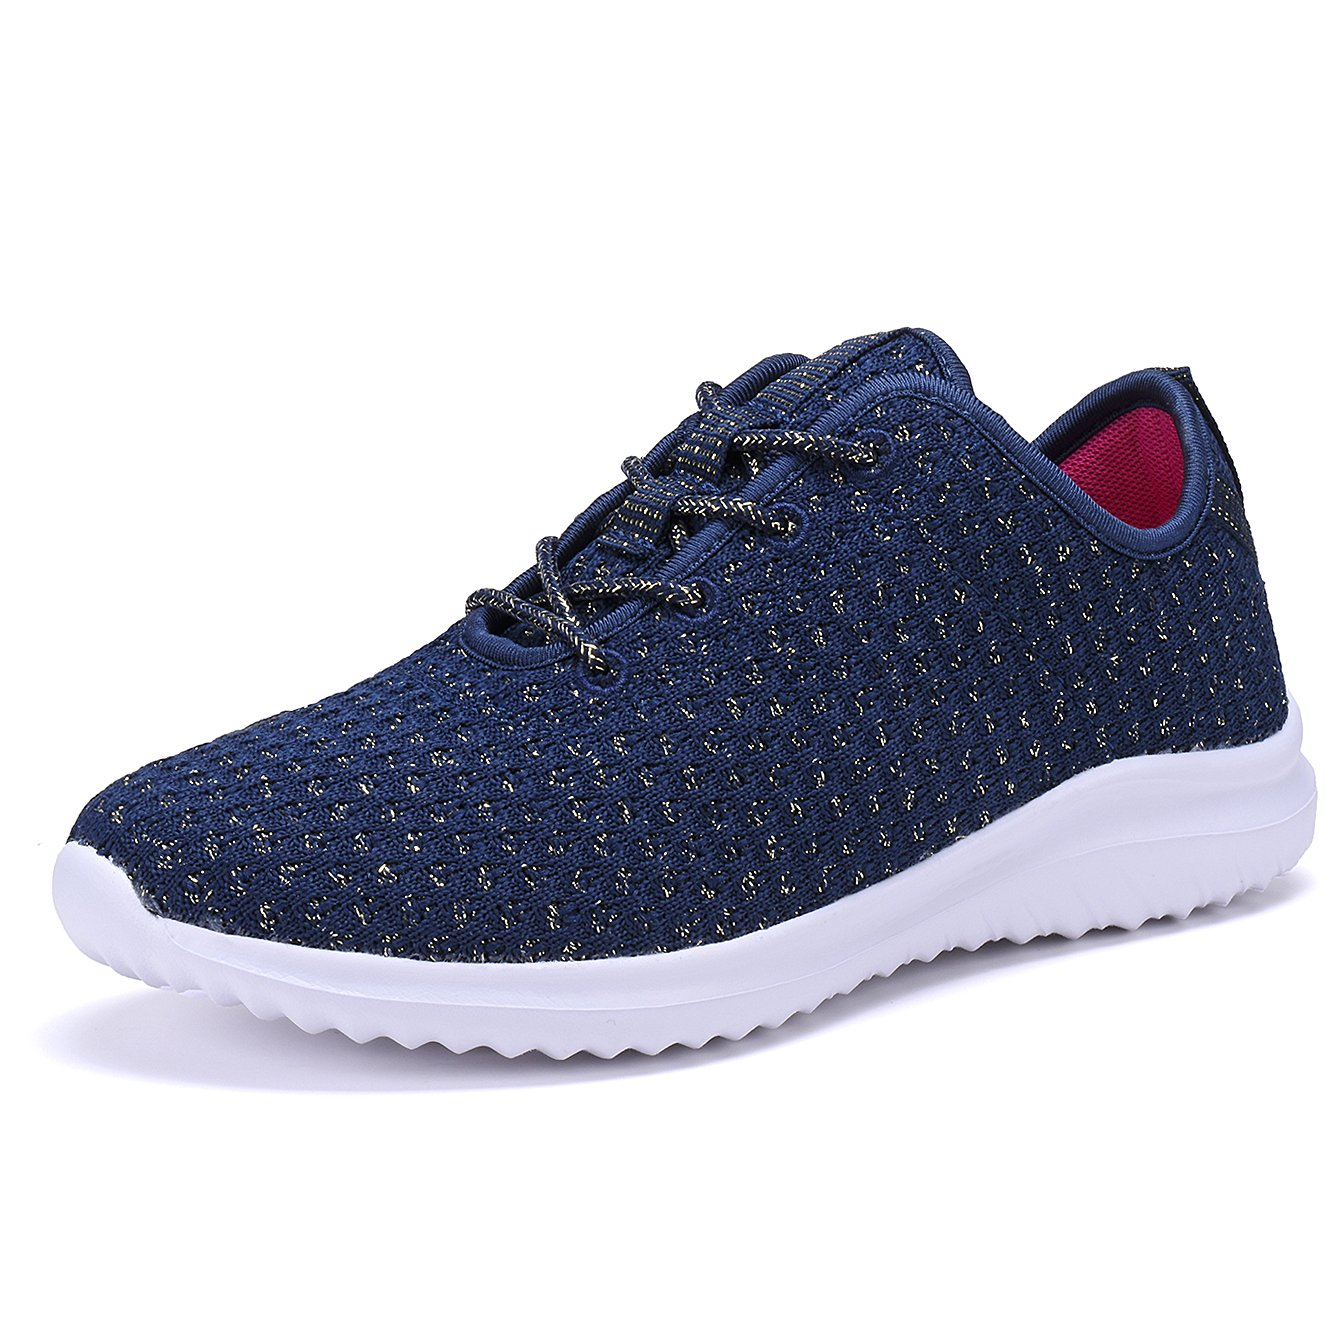 YILAN Women's Fashion Sneakers Casual Sport Shoes B06XYYTXZH 7 B(M) US|Navy